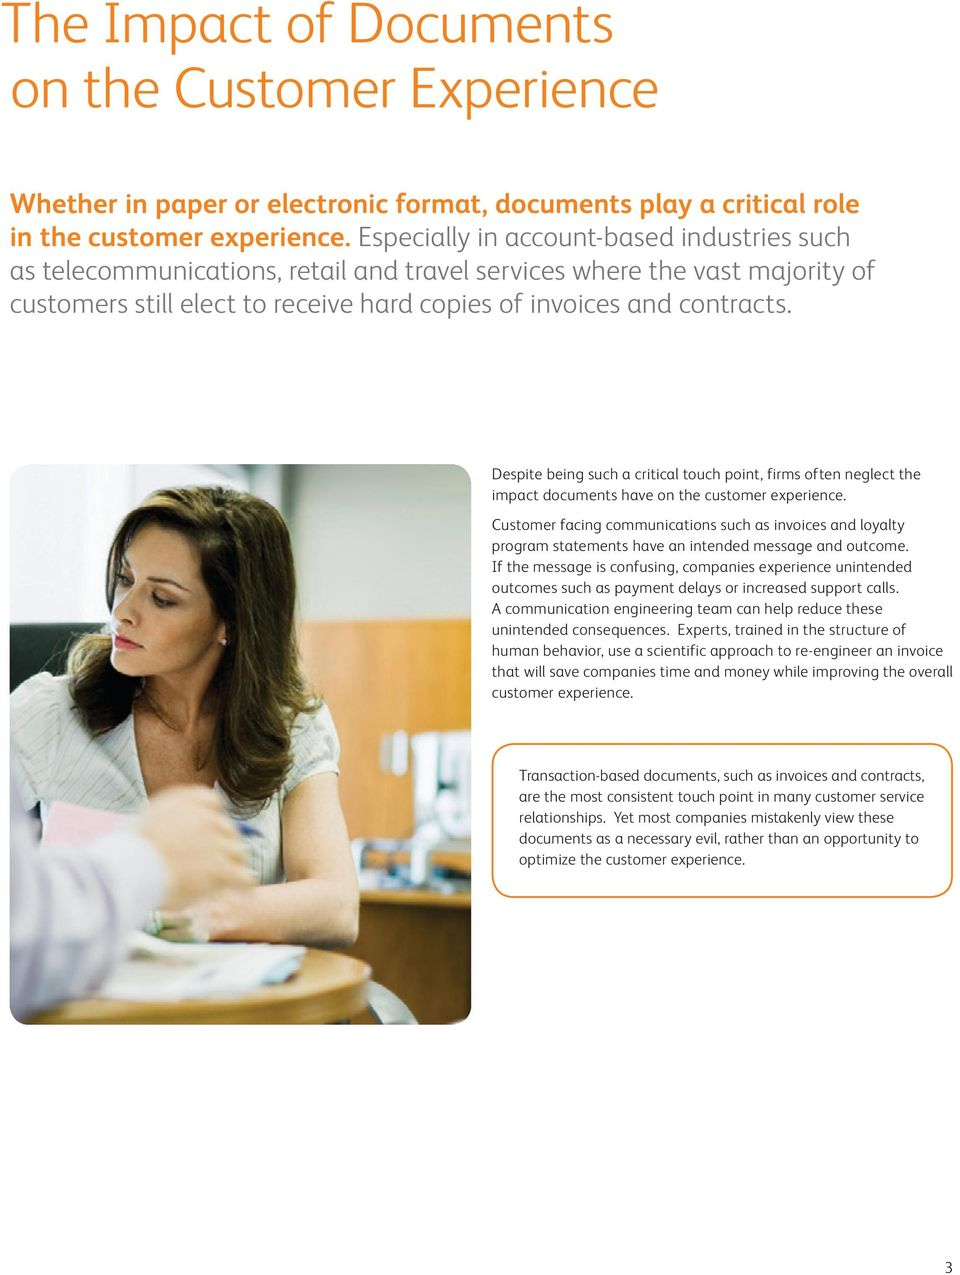 Despite being such a critical touch point, firms often neglect the impact documents have on the customer experience.